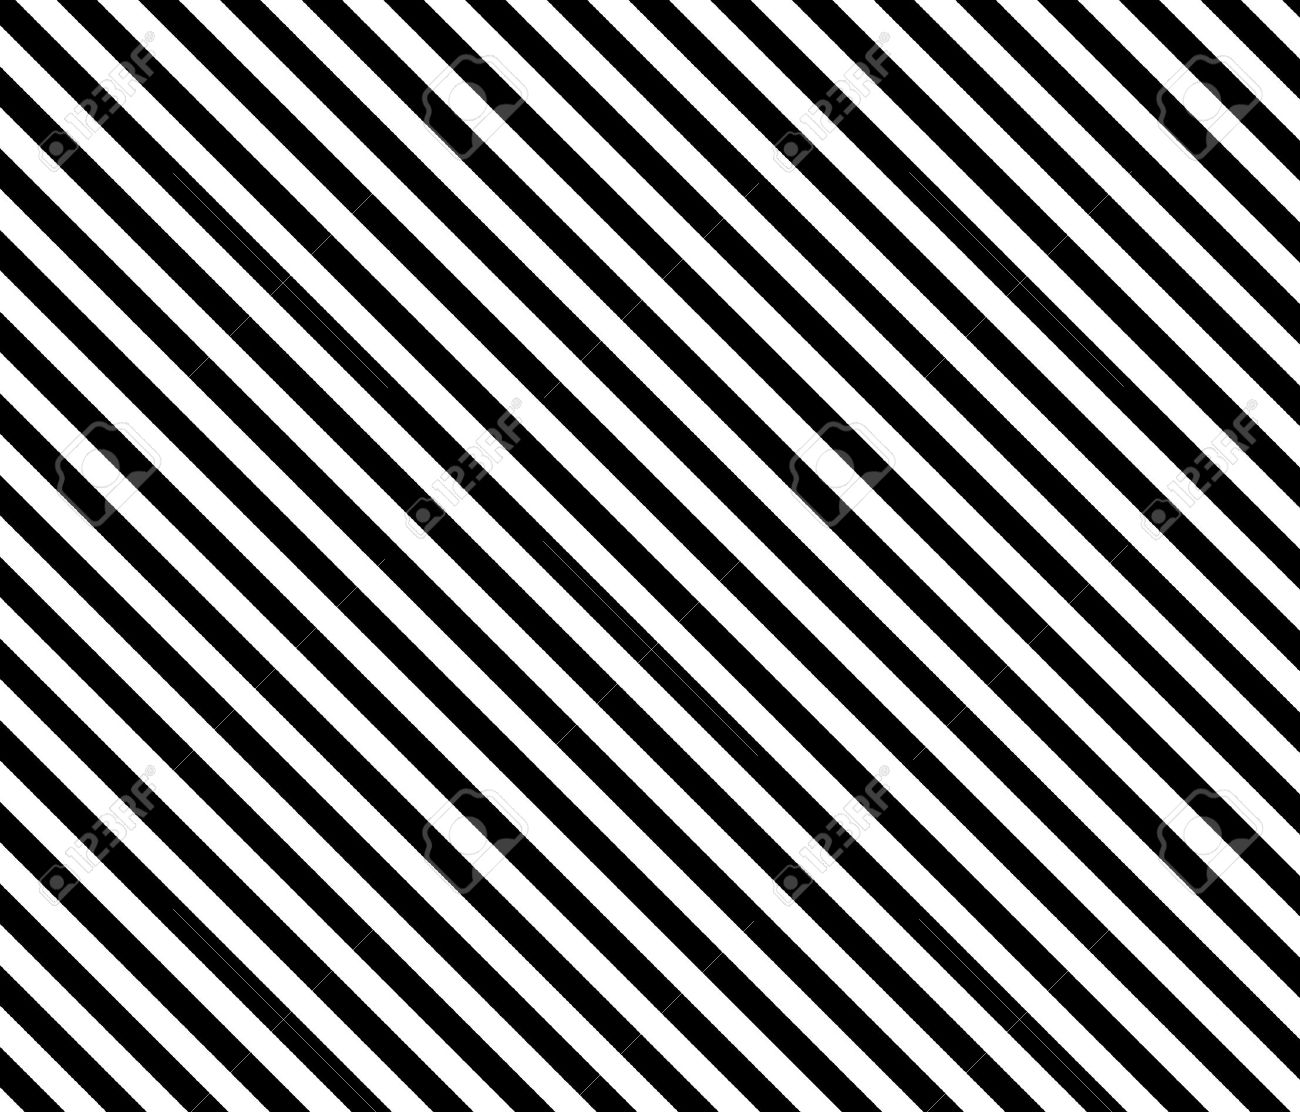 Black White Diagonal Stripes Wiring Diagrams Computing Circuits Freecircuitsnet Background In And Stock Photo Picture Rh 123rf Com Stripe Top